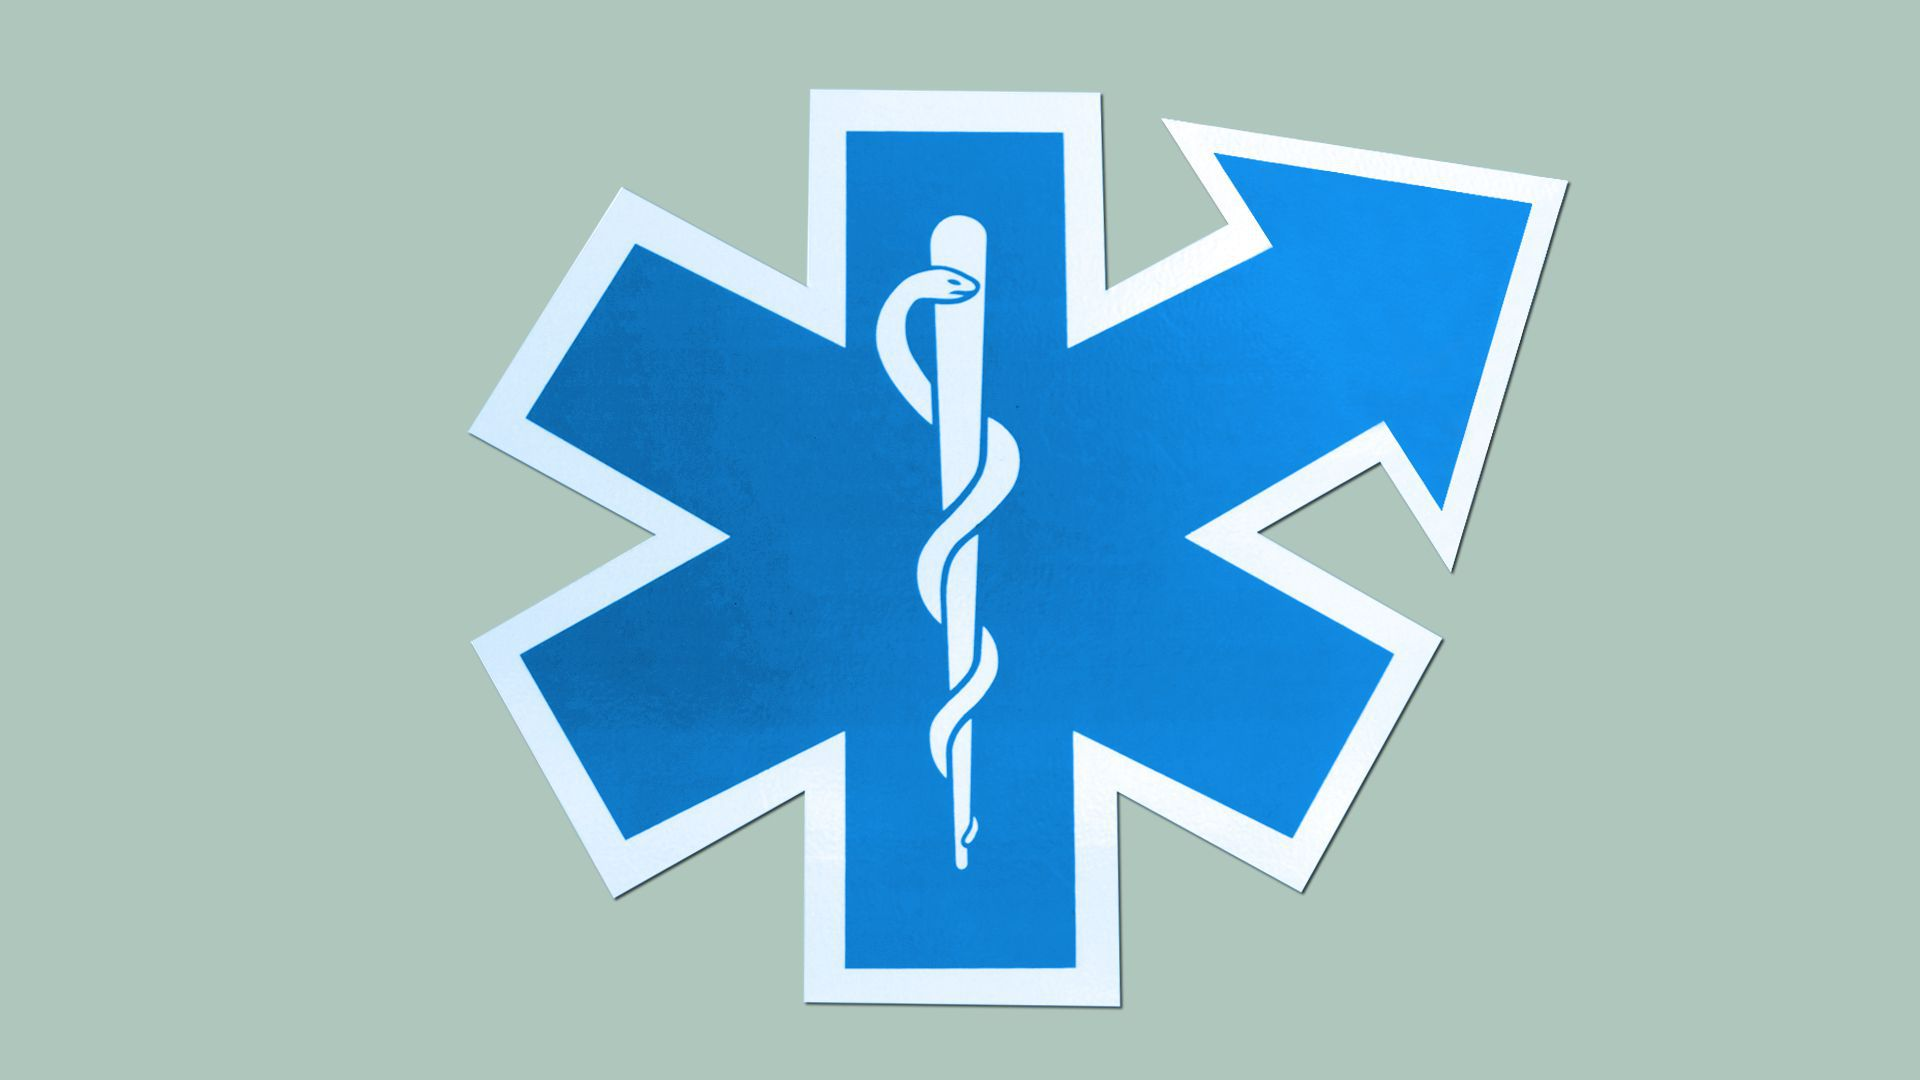 Illustration of an EMS symbol with one of the crossbars forming an upward arrow.